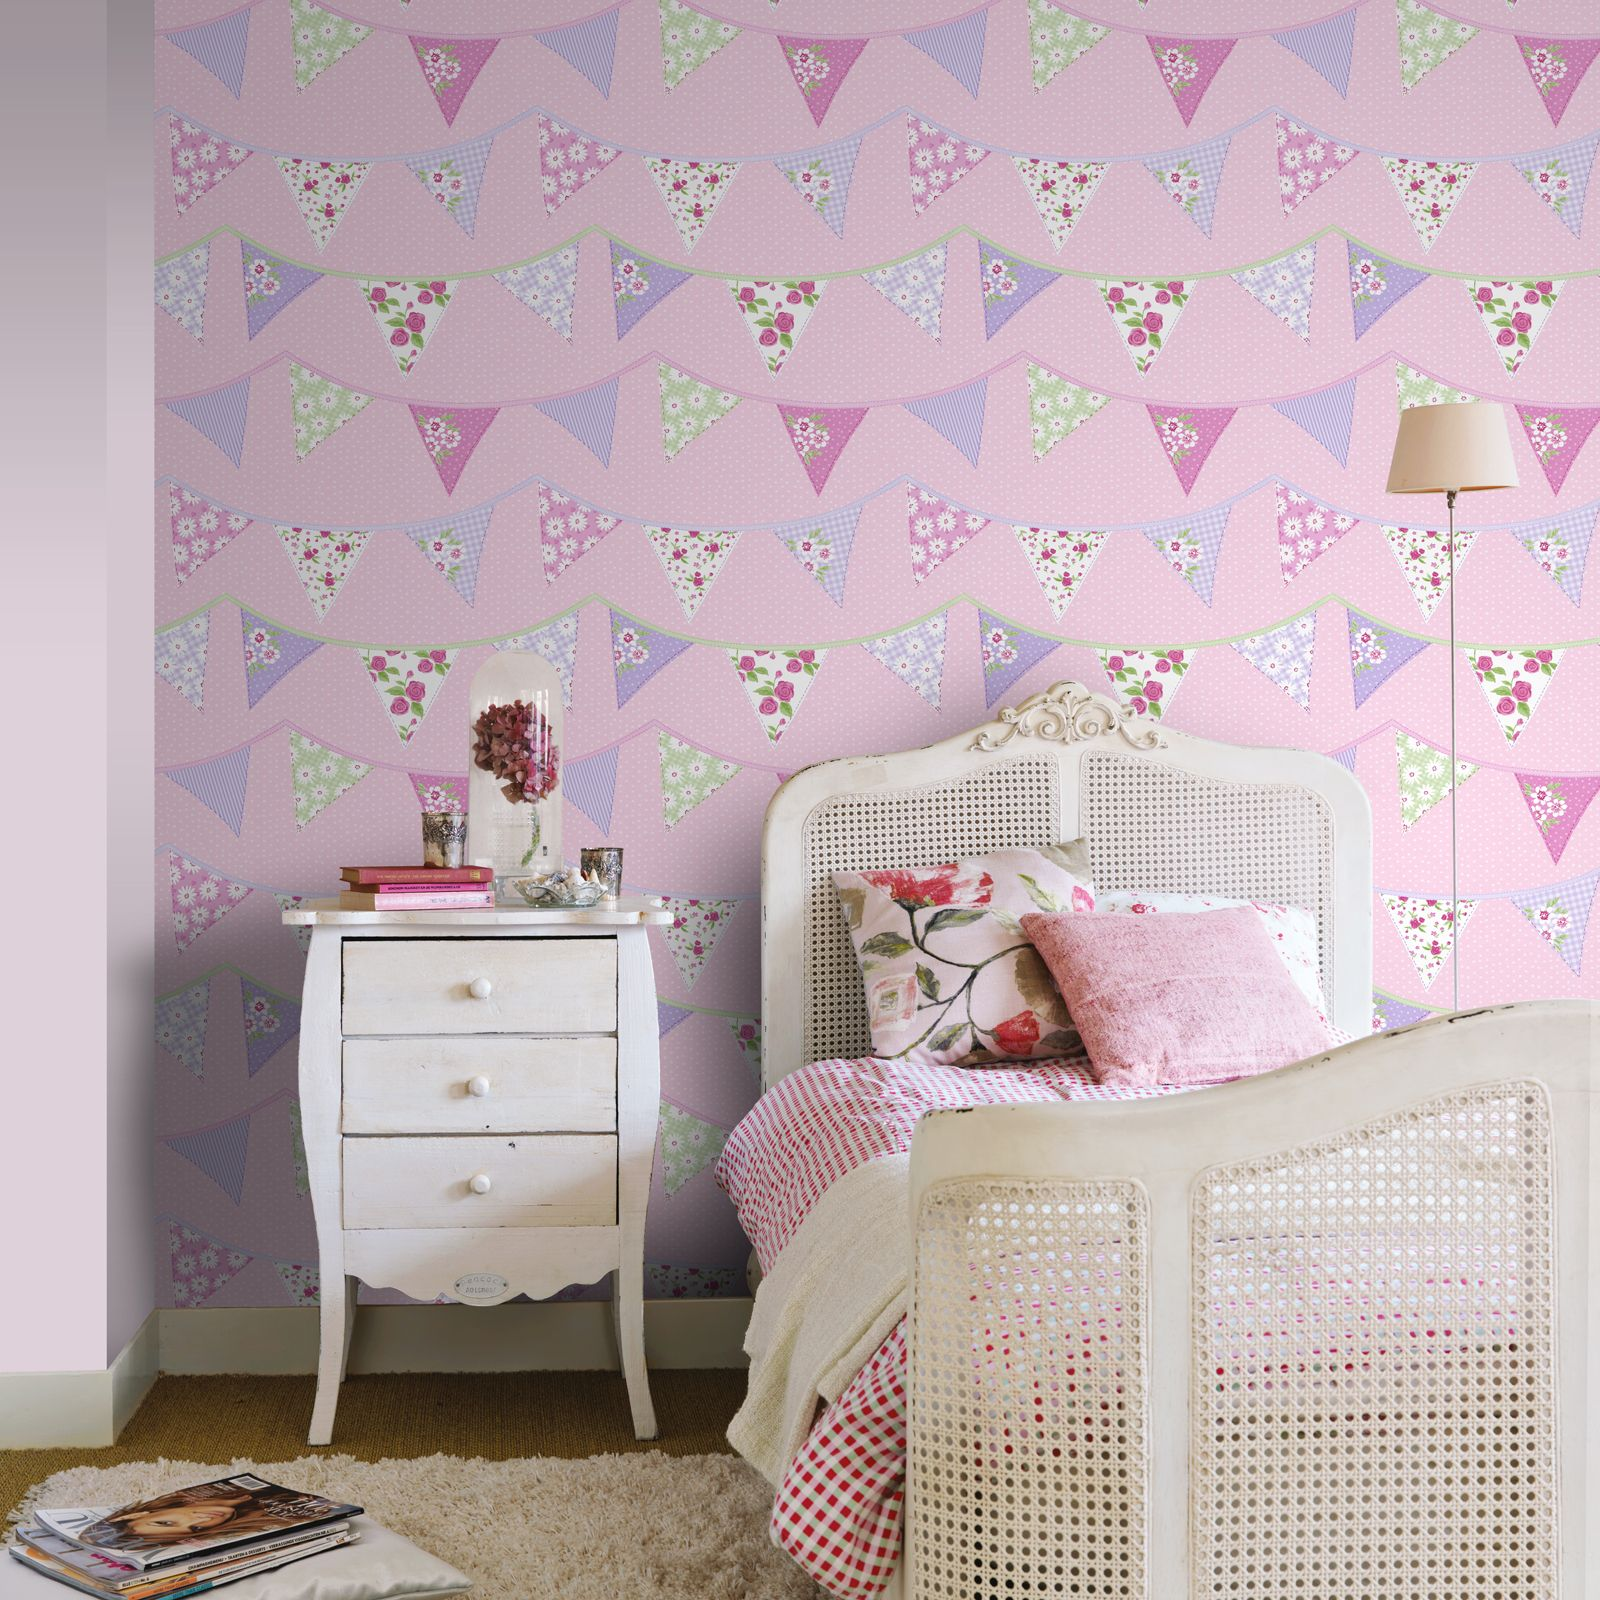 fahnentuch tapete blau rosa pastell blumen design waschbar m dchen schlafzimmer ebay. Black Bedroom Furniture Sets. Home Design Ideas